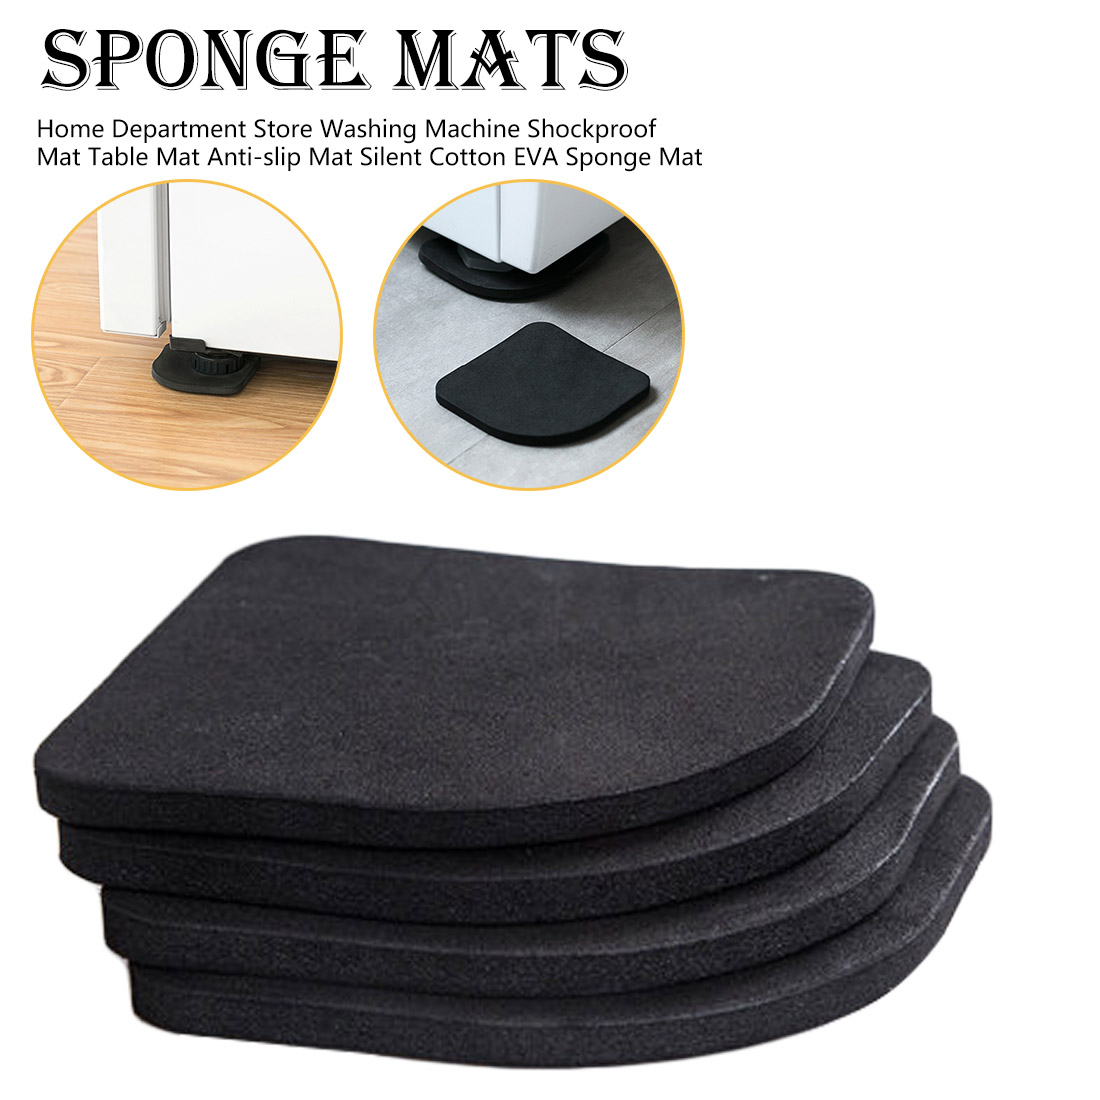 4pcs Durable Shockproof Non Slip Anti-Vibration Pad  For Washing Machine Home Refrigerator